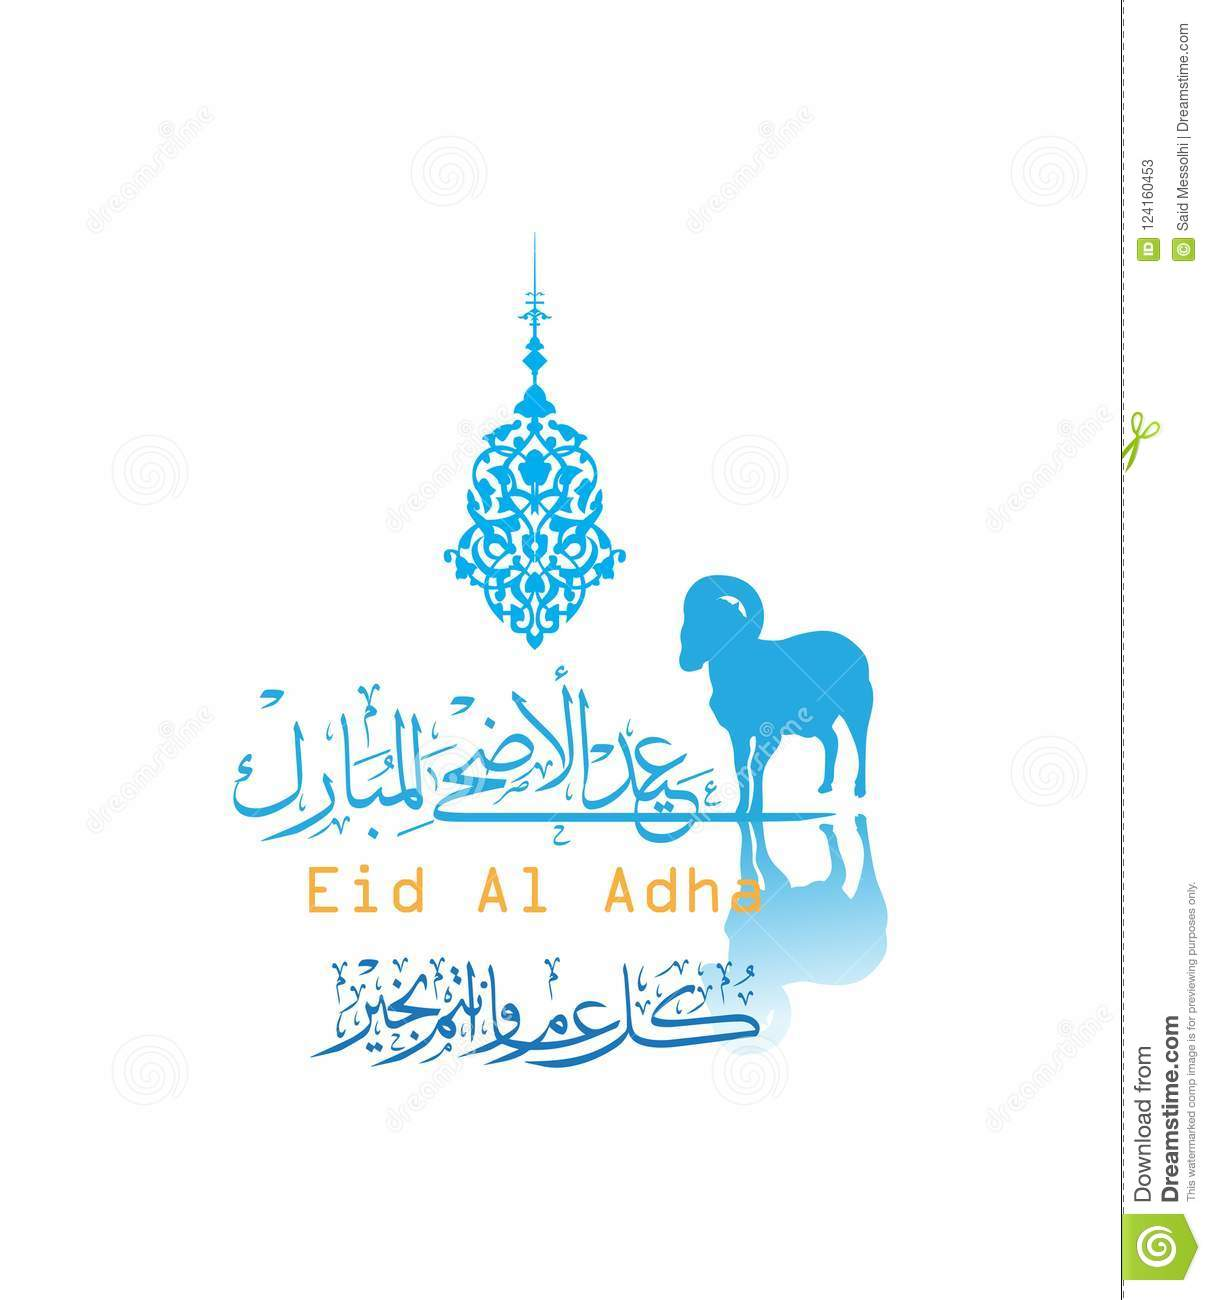 Eid Mubarak In Arabic Calligraphy Eid Means Celebration And Mubarak Means Blessed Stock Vector Illustration Of Holiday Animal 124160453